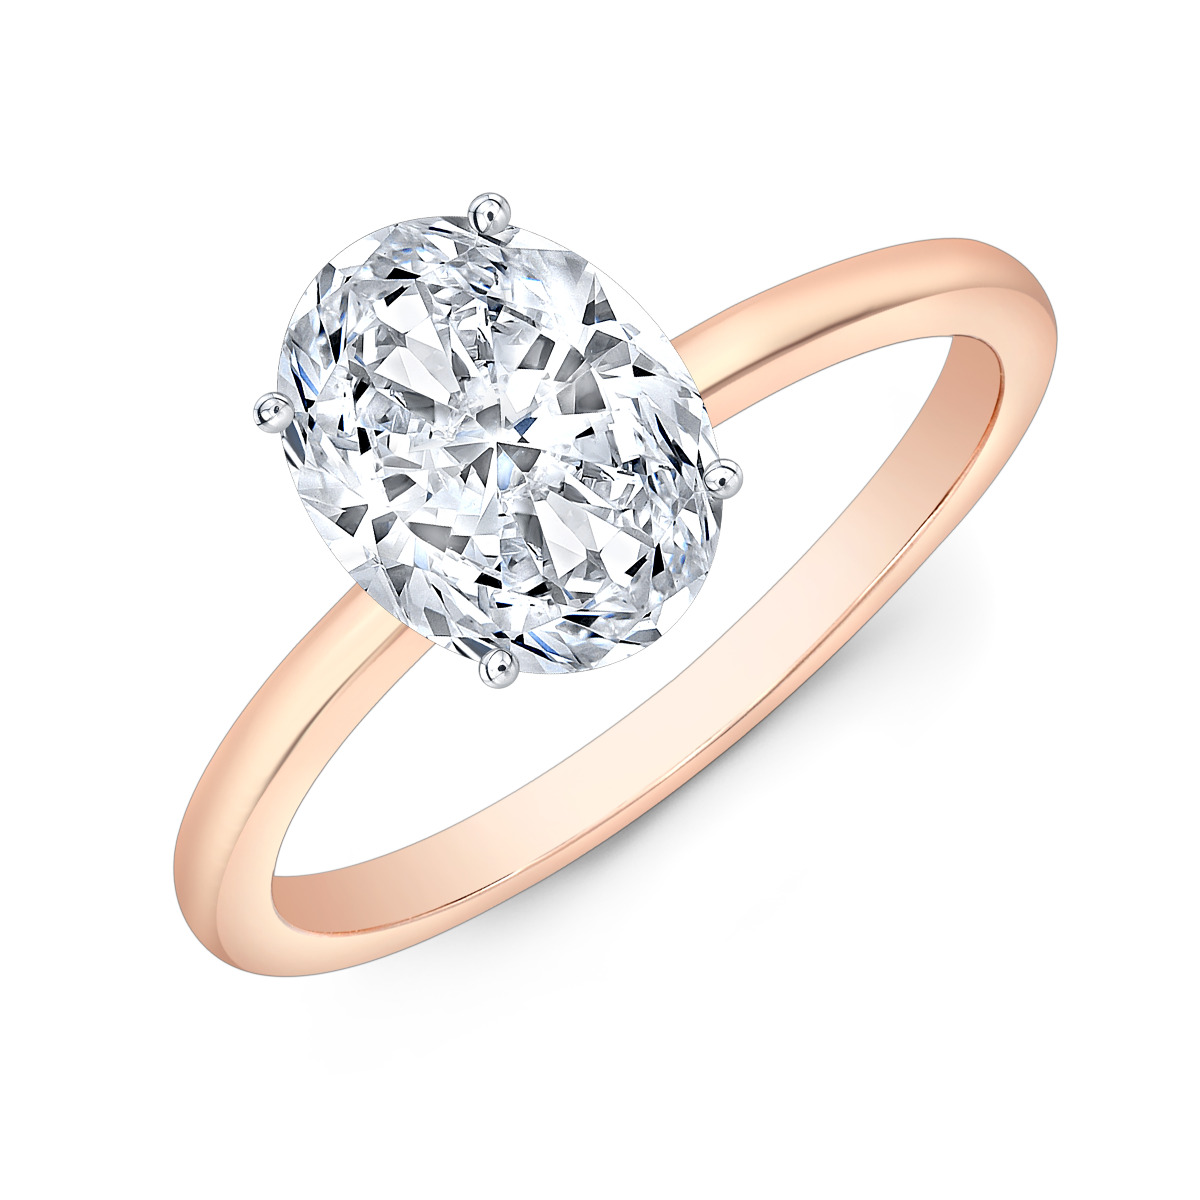 Thin Solitaire Diamond Engagement Ring